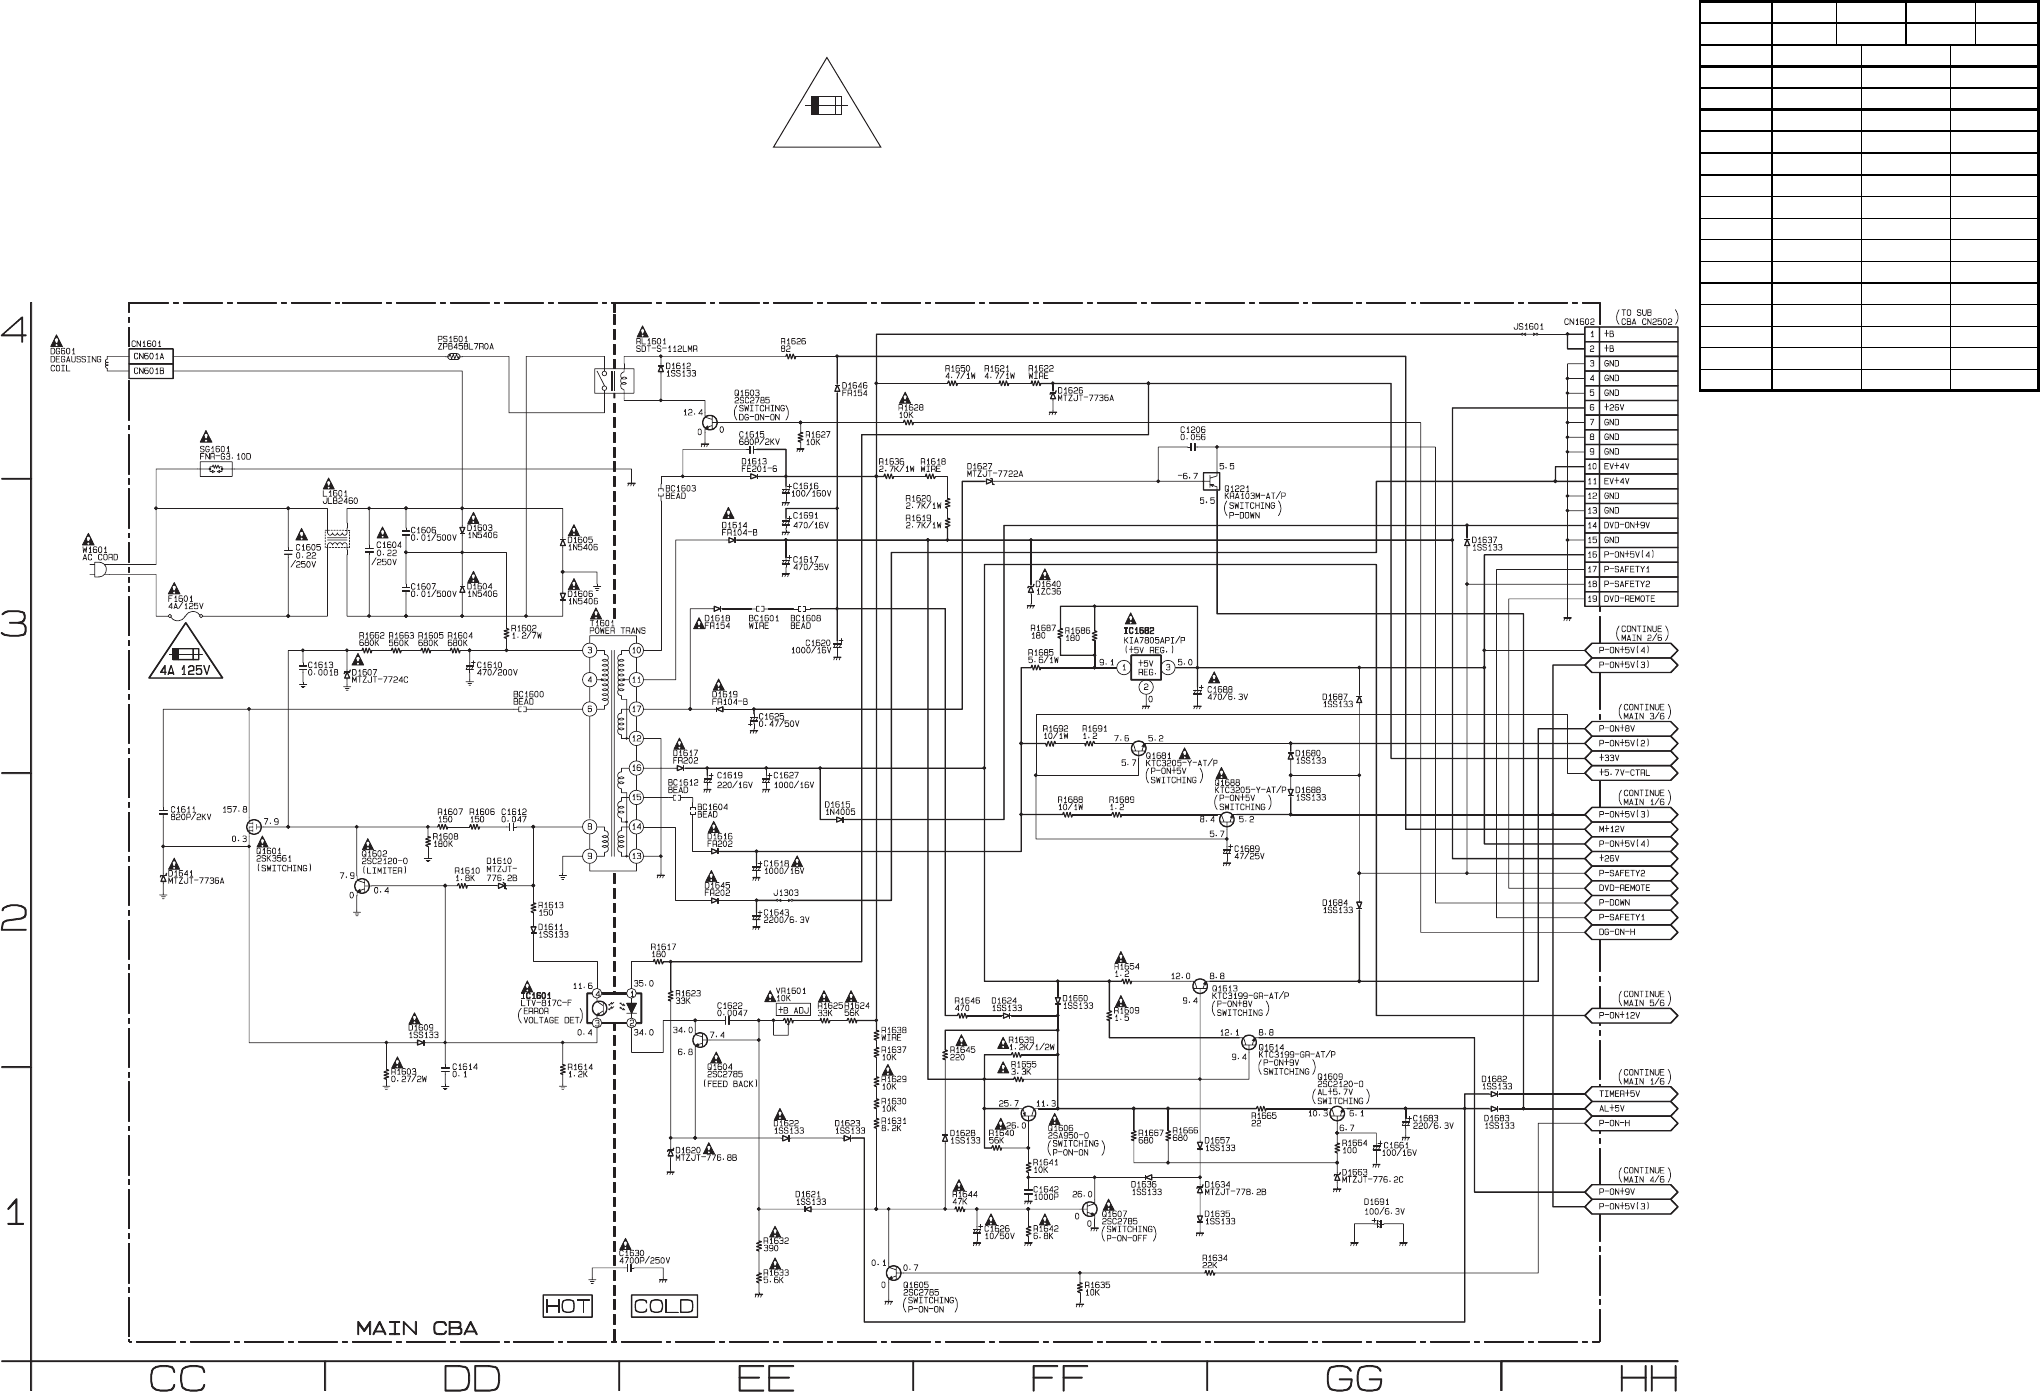 Magnavox Tv Schematic Diagrams Wiring Diagram For Light Switch Damon Intruder Page 46 Of Vcr Combo Mwc24t5 User Guide Manualsonline Com Rh Samsung Remote Codes